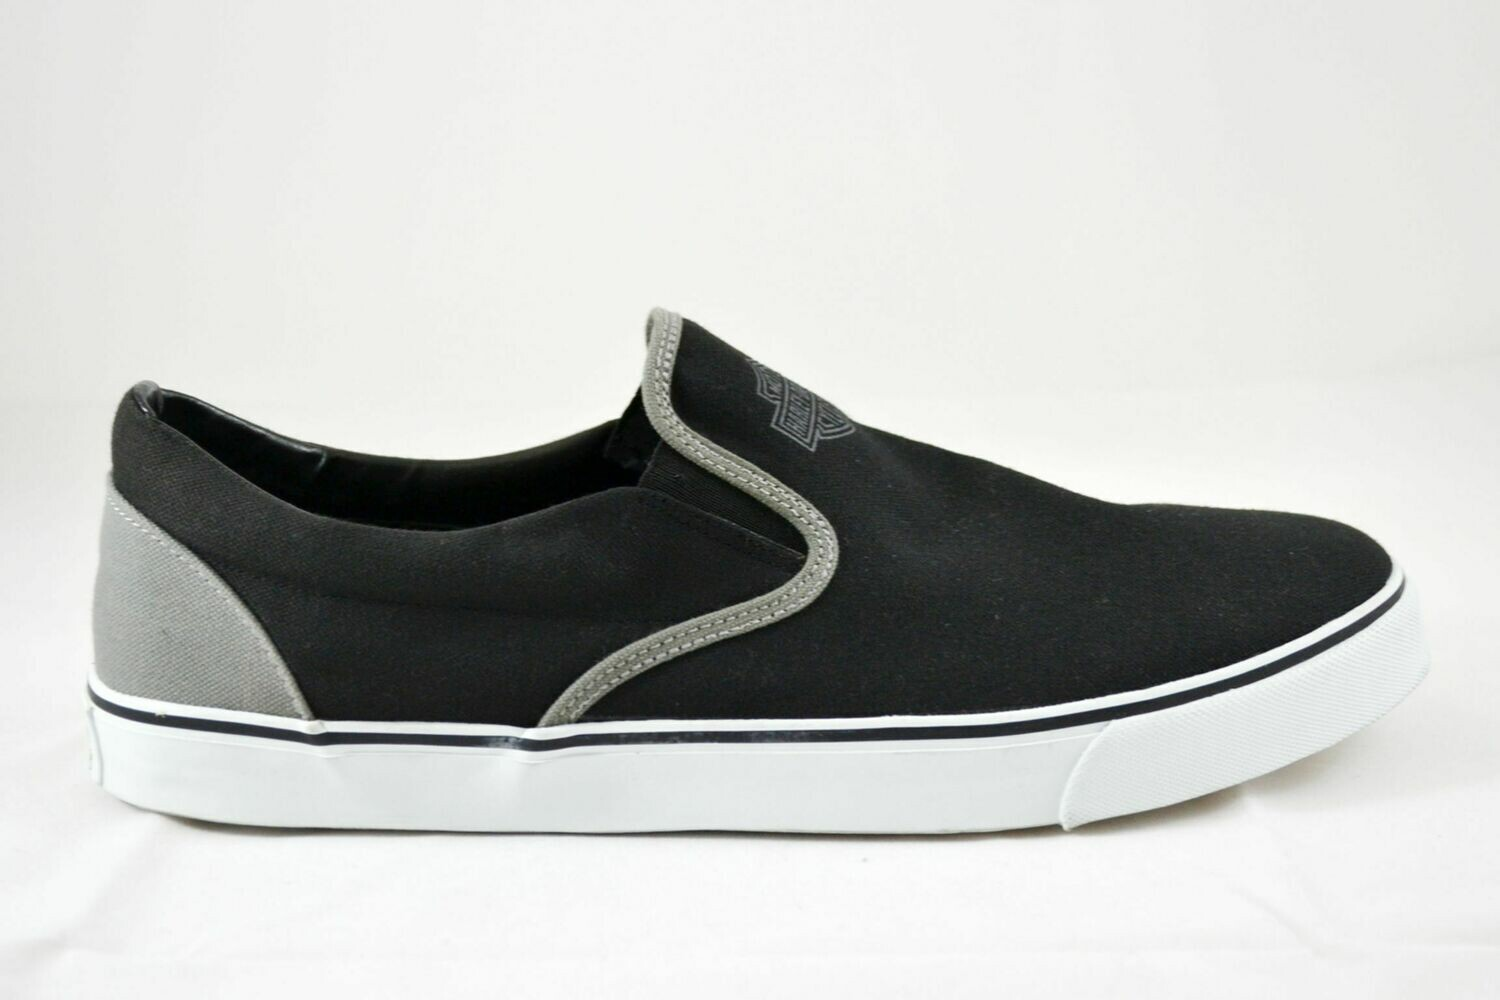 Marchmont Black and Grey Canvas Sneakers Men